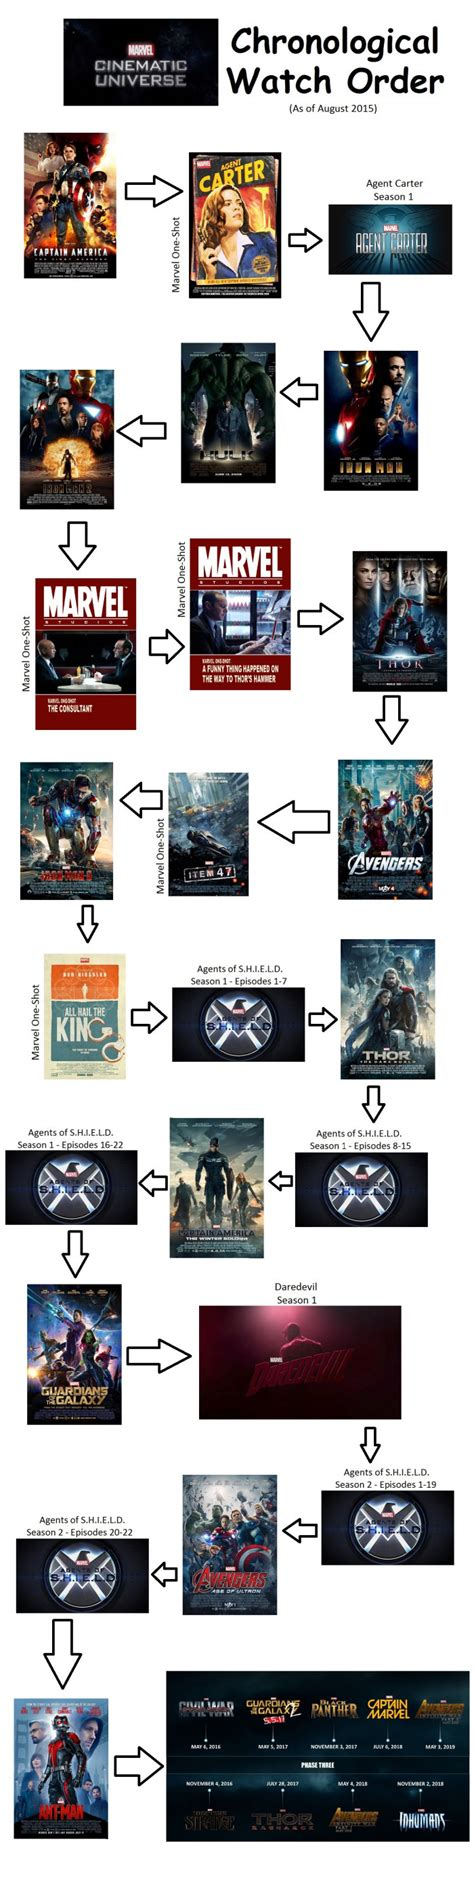 How to Watch the Marvel Cinematic Universe in